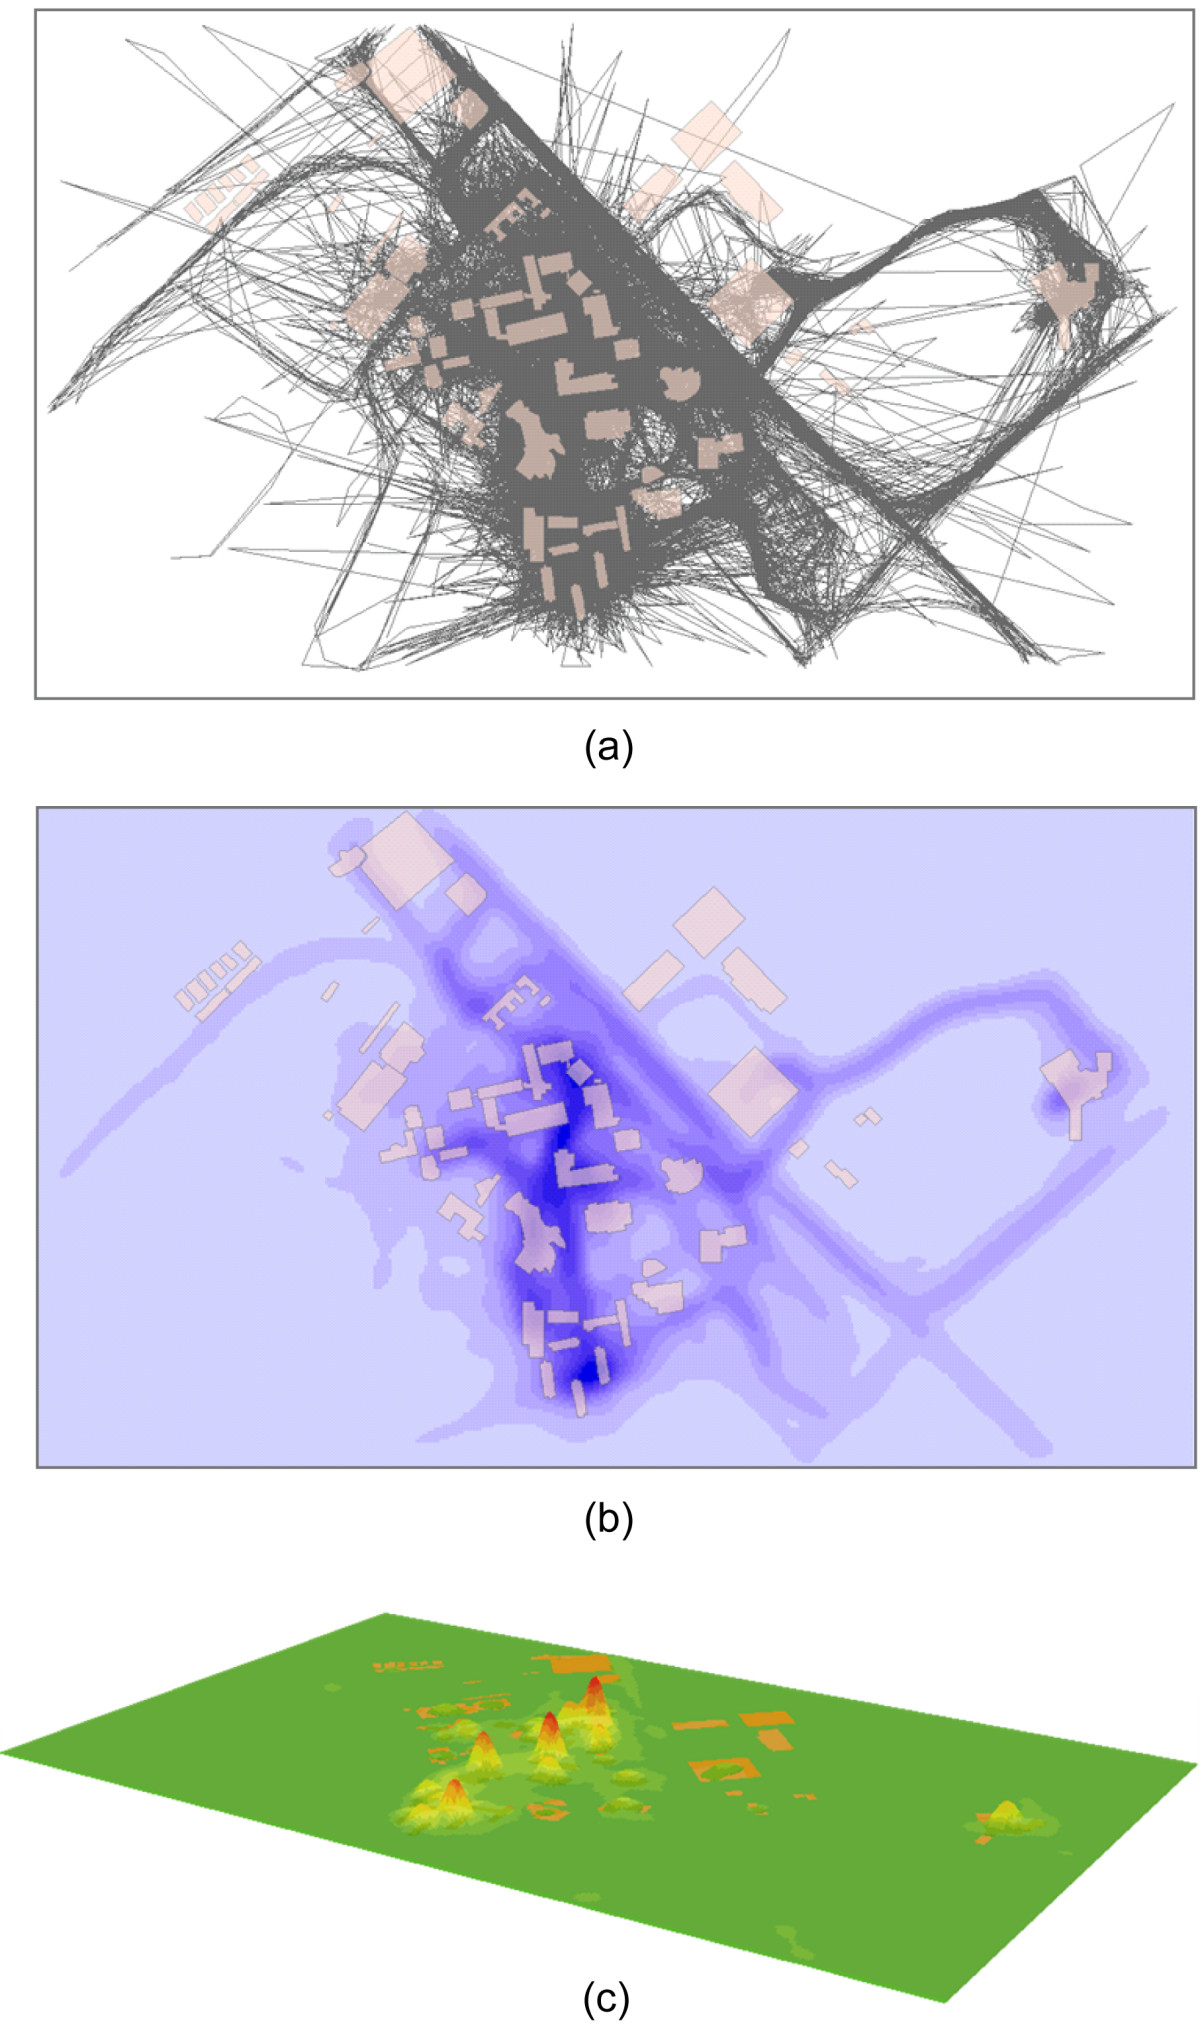 http://static-content.springer.com/image/art%3A10.1186%2F1476-072X-12-6/MediaObjects/12942_2012_Article_523_Fig5_HTML.jpg